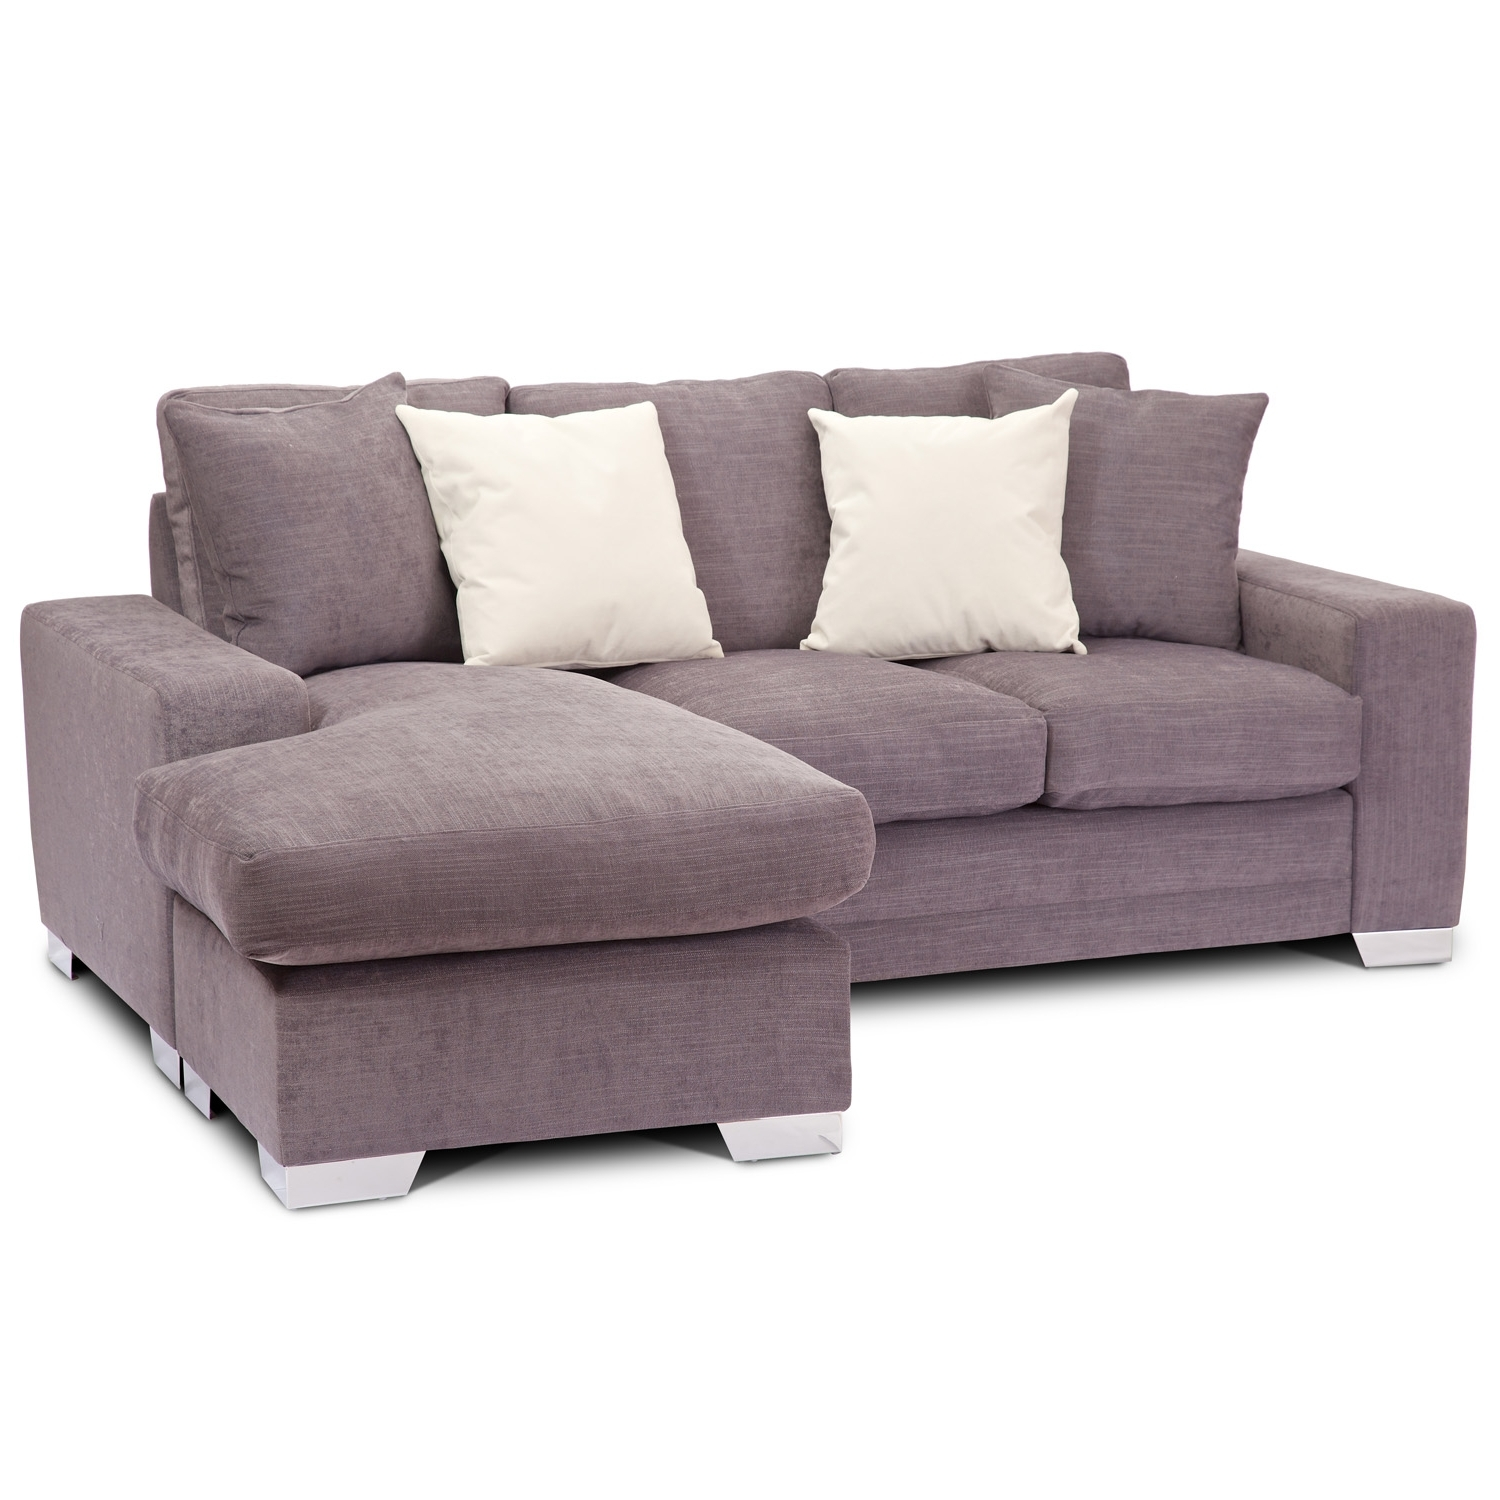 Famous Chaise Lounge Sofa Beds Regarding Sofas: Classic Meets Contemporary Chaise Sofa Bed For Ideal Living (View 8 of 15)